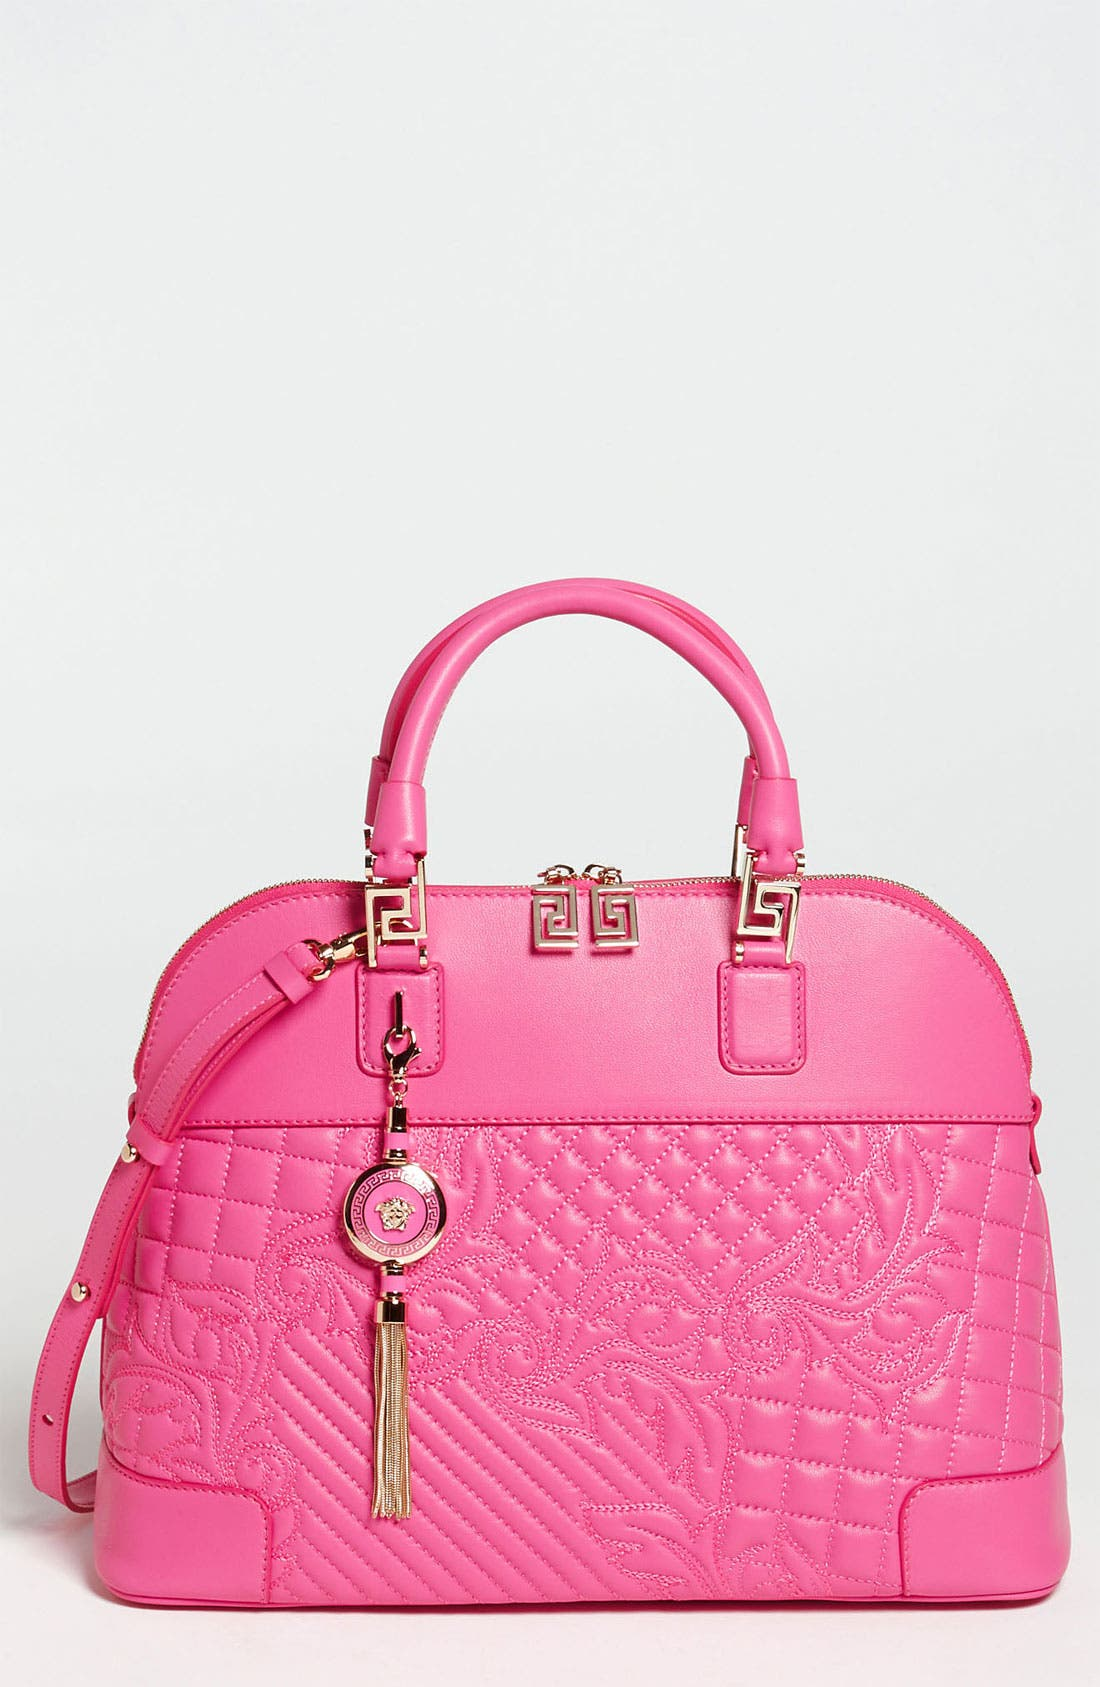 Alternate Image 1 Selected - Versace 'Vanitas' Embroidered Leather Satchel